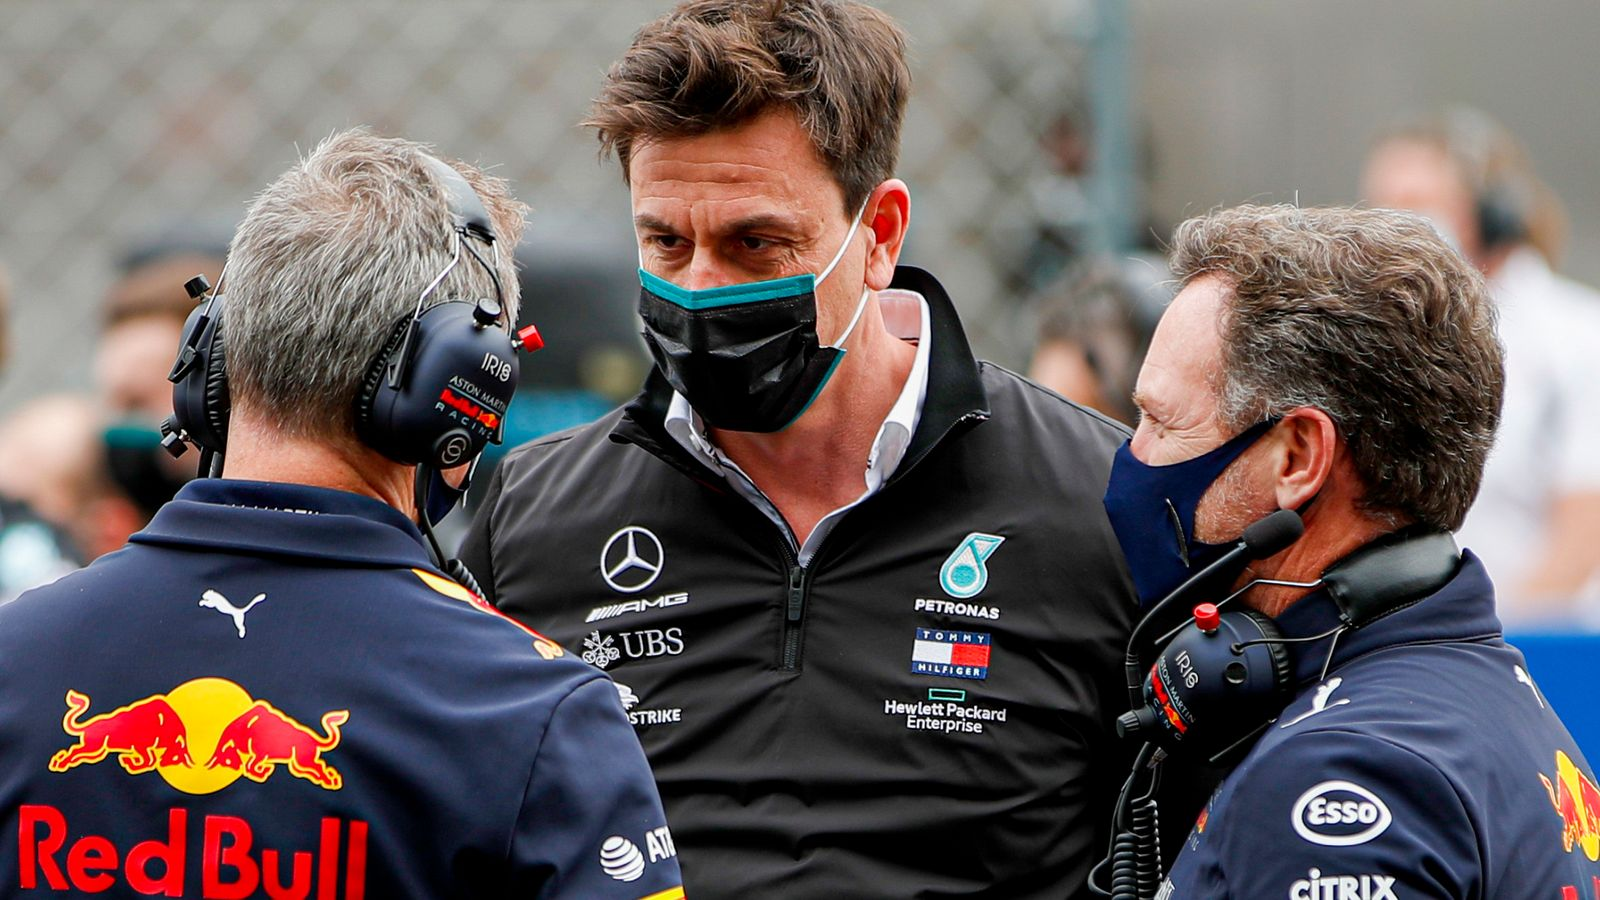 Mercedes boss Toto Wolff says Red Bull's Lewis Hamilton collision criticism went 'step too far'